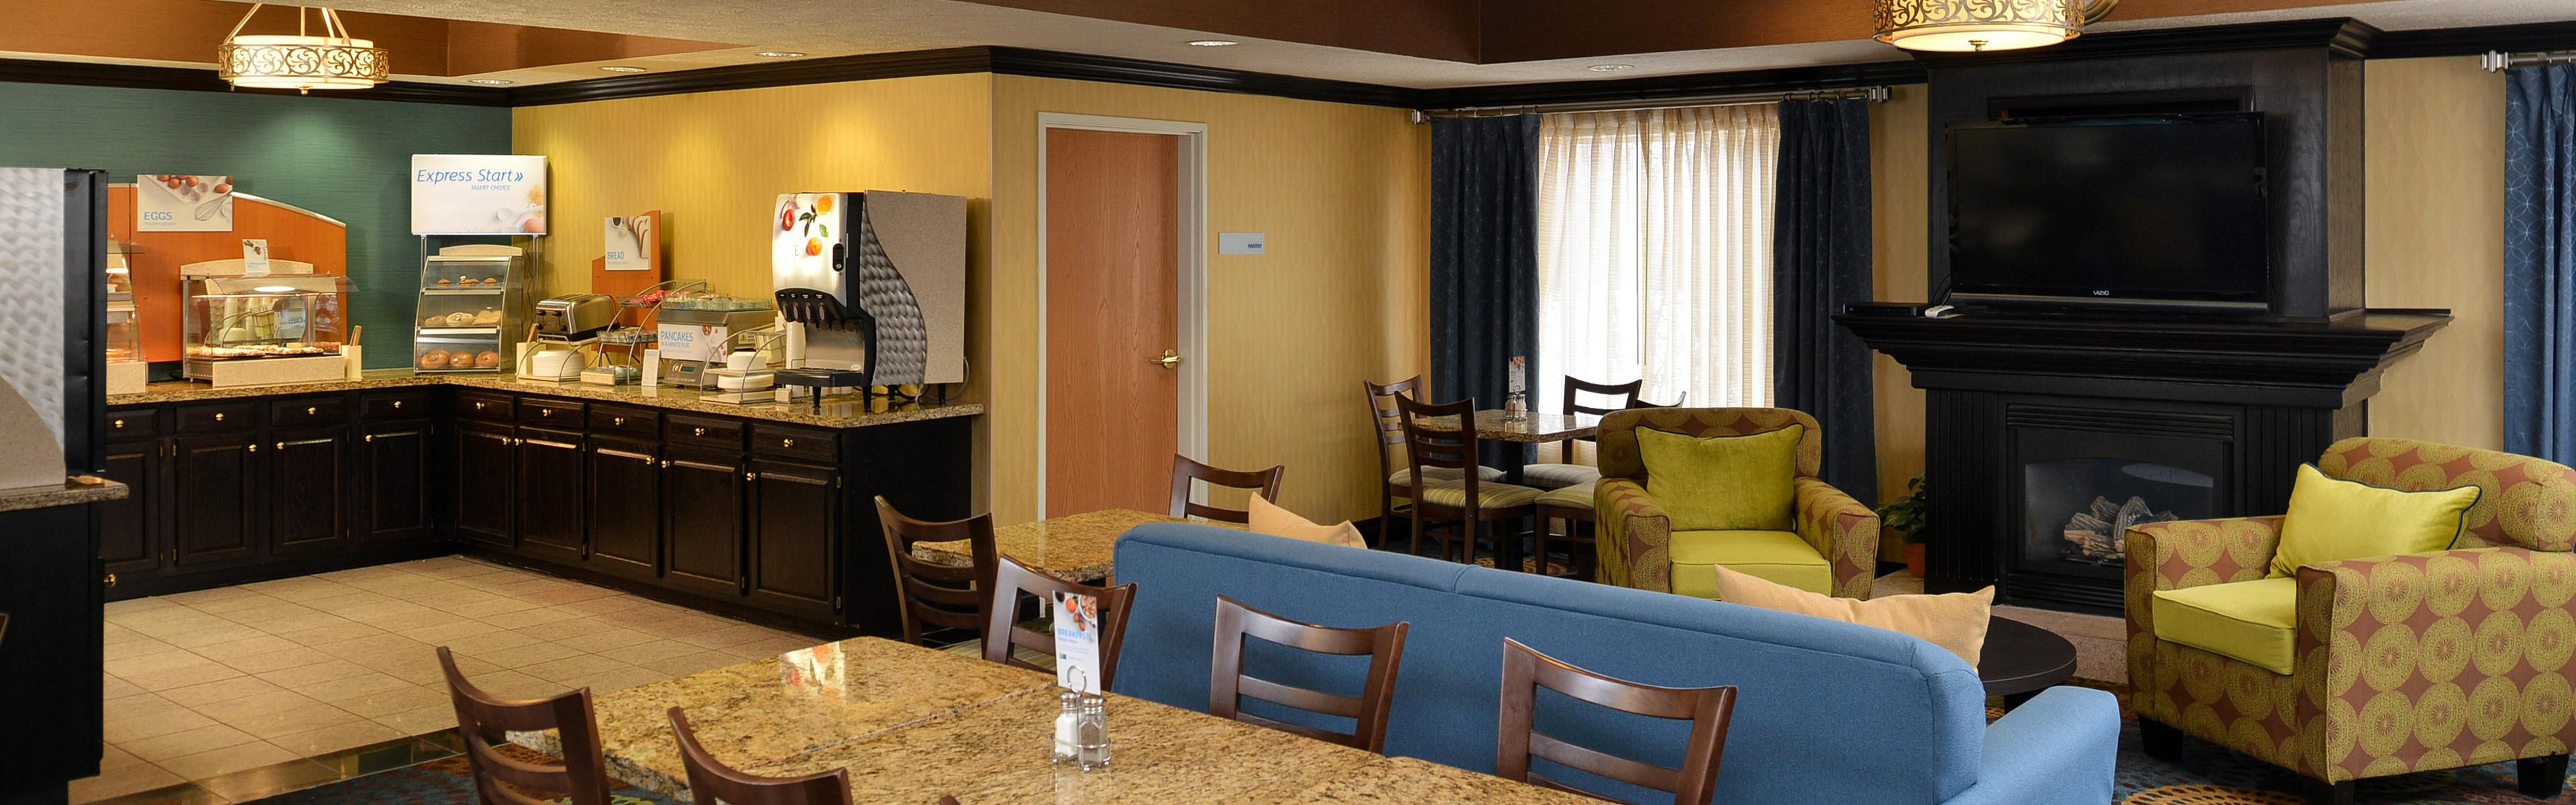 Holiday Inn Express & Suites Charlotte image 3